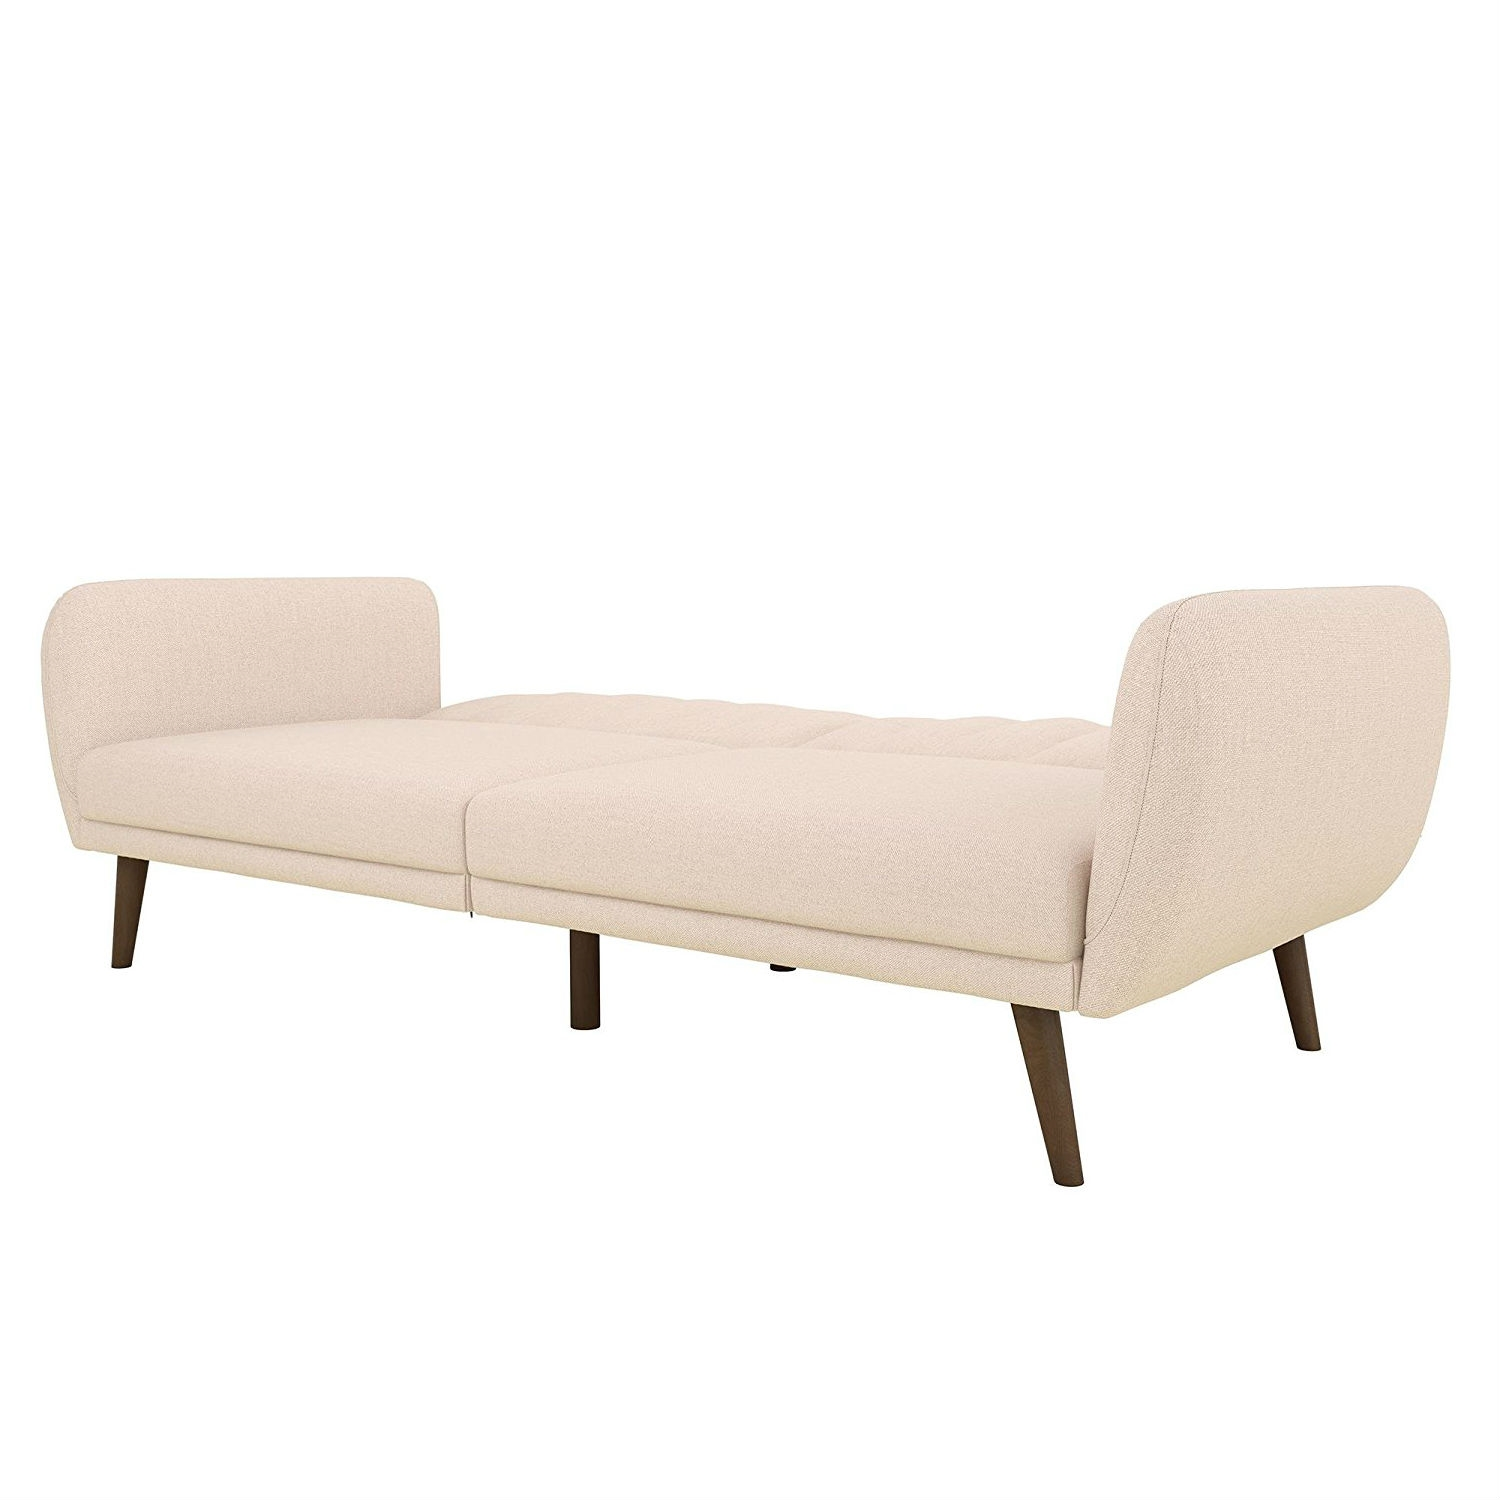 Pink Linen Upholstered Futon Sofa Bed with Mid Century ...